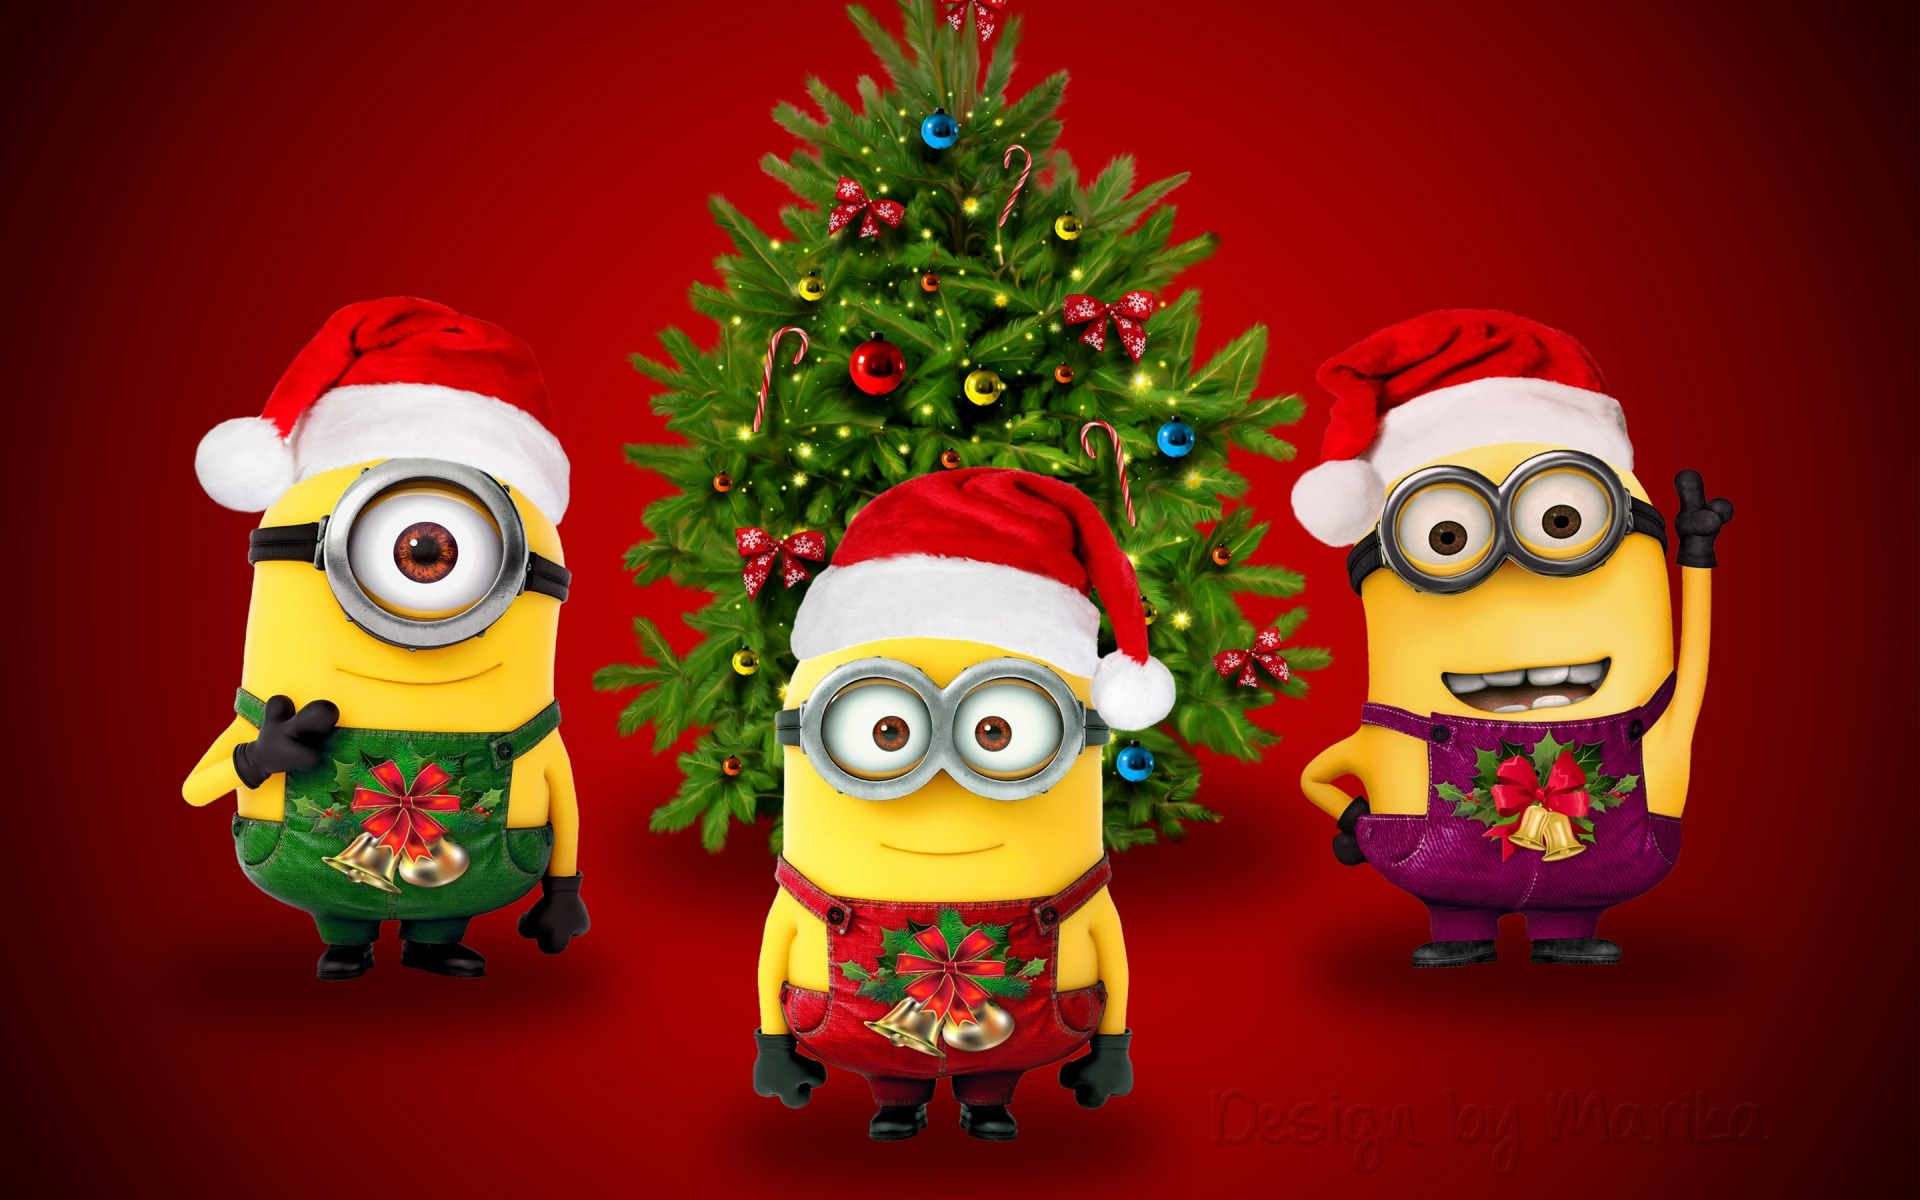 Christmas Pictures Download.Get Free Christmas Pictures Here